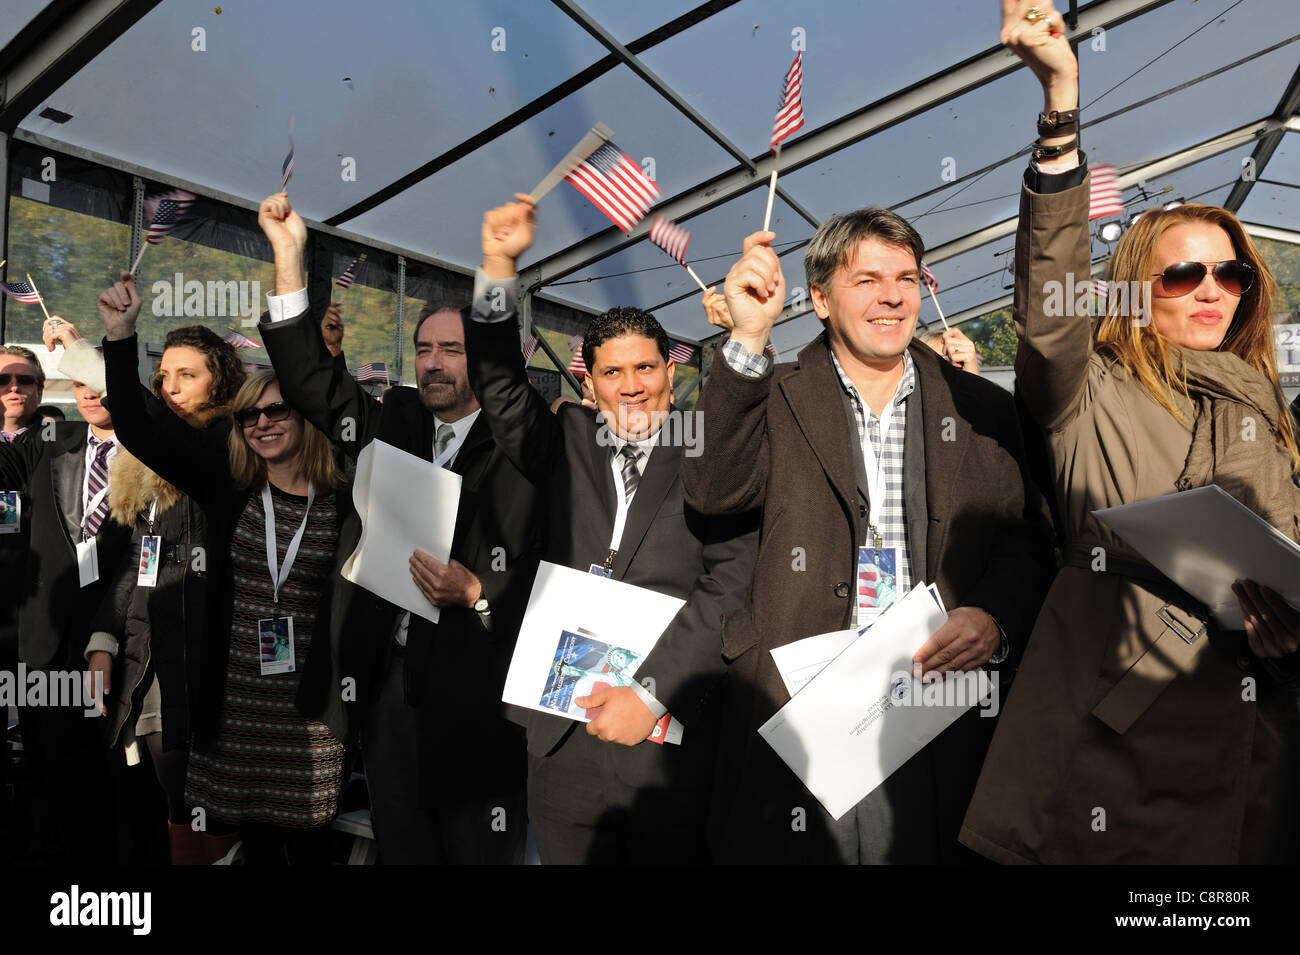 As they became U.S. citizens in a naturalization ceremony on Liberty Island, the 125 new citizens waved U.S. flags - Stock Image